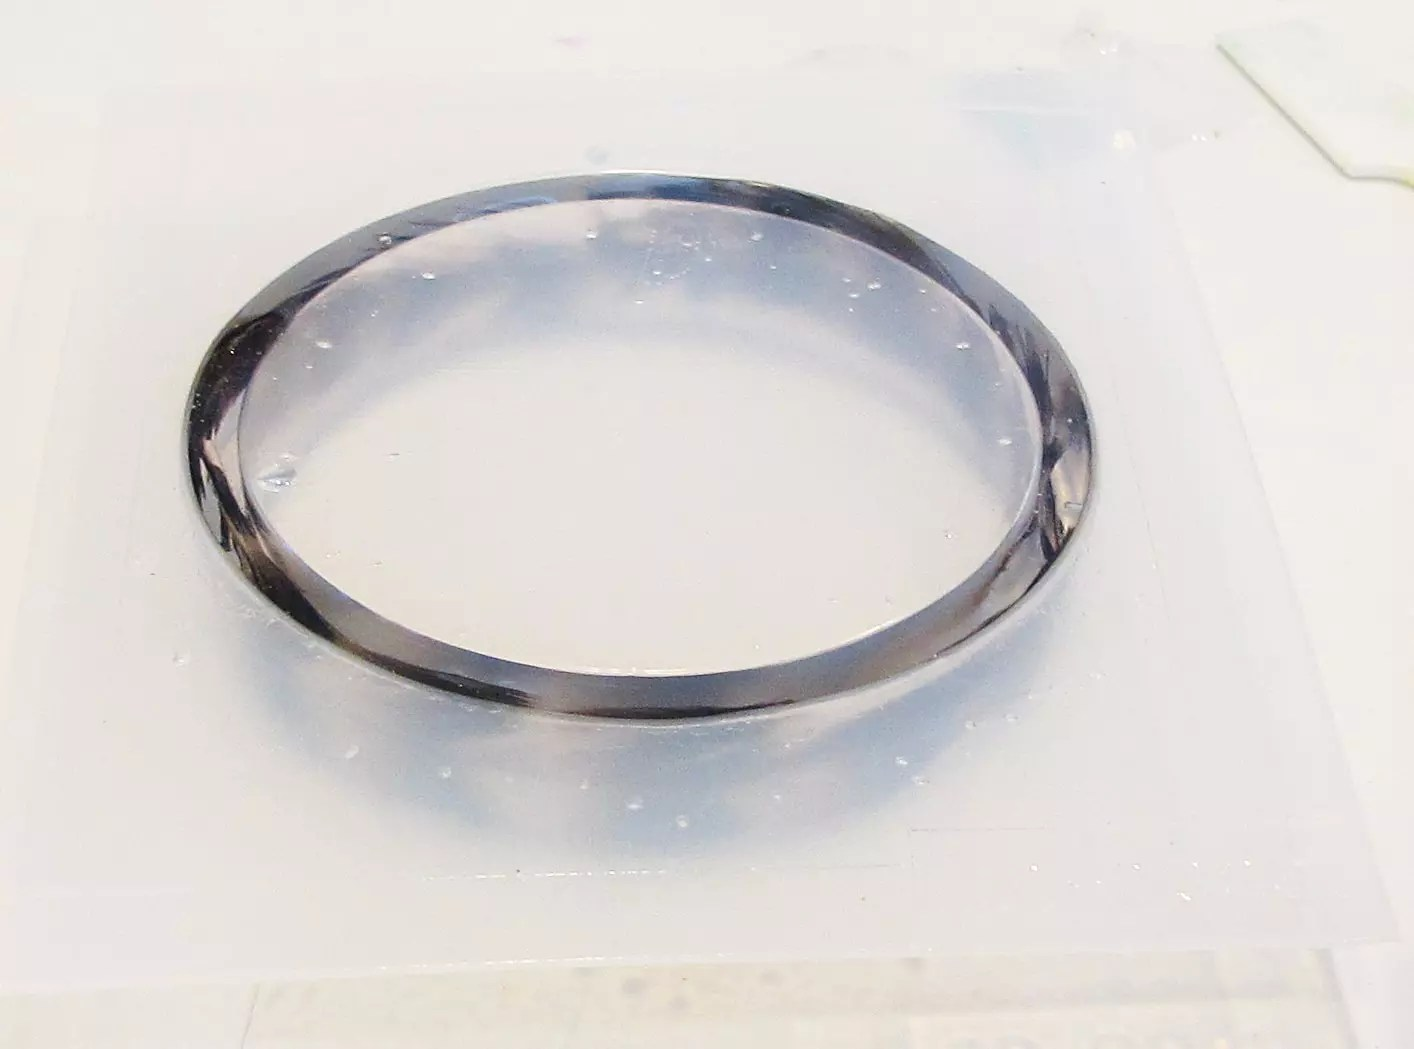 feathers in a resin bracelet mold